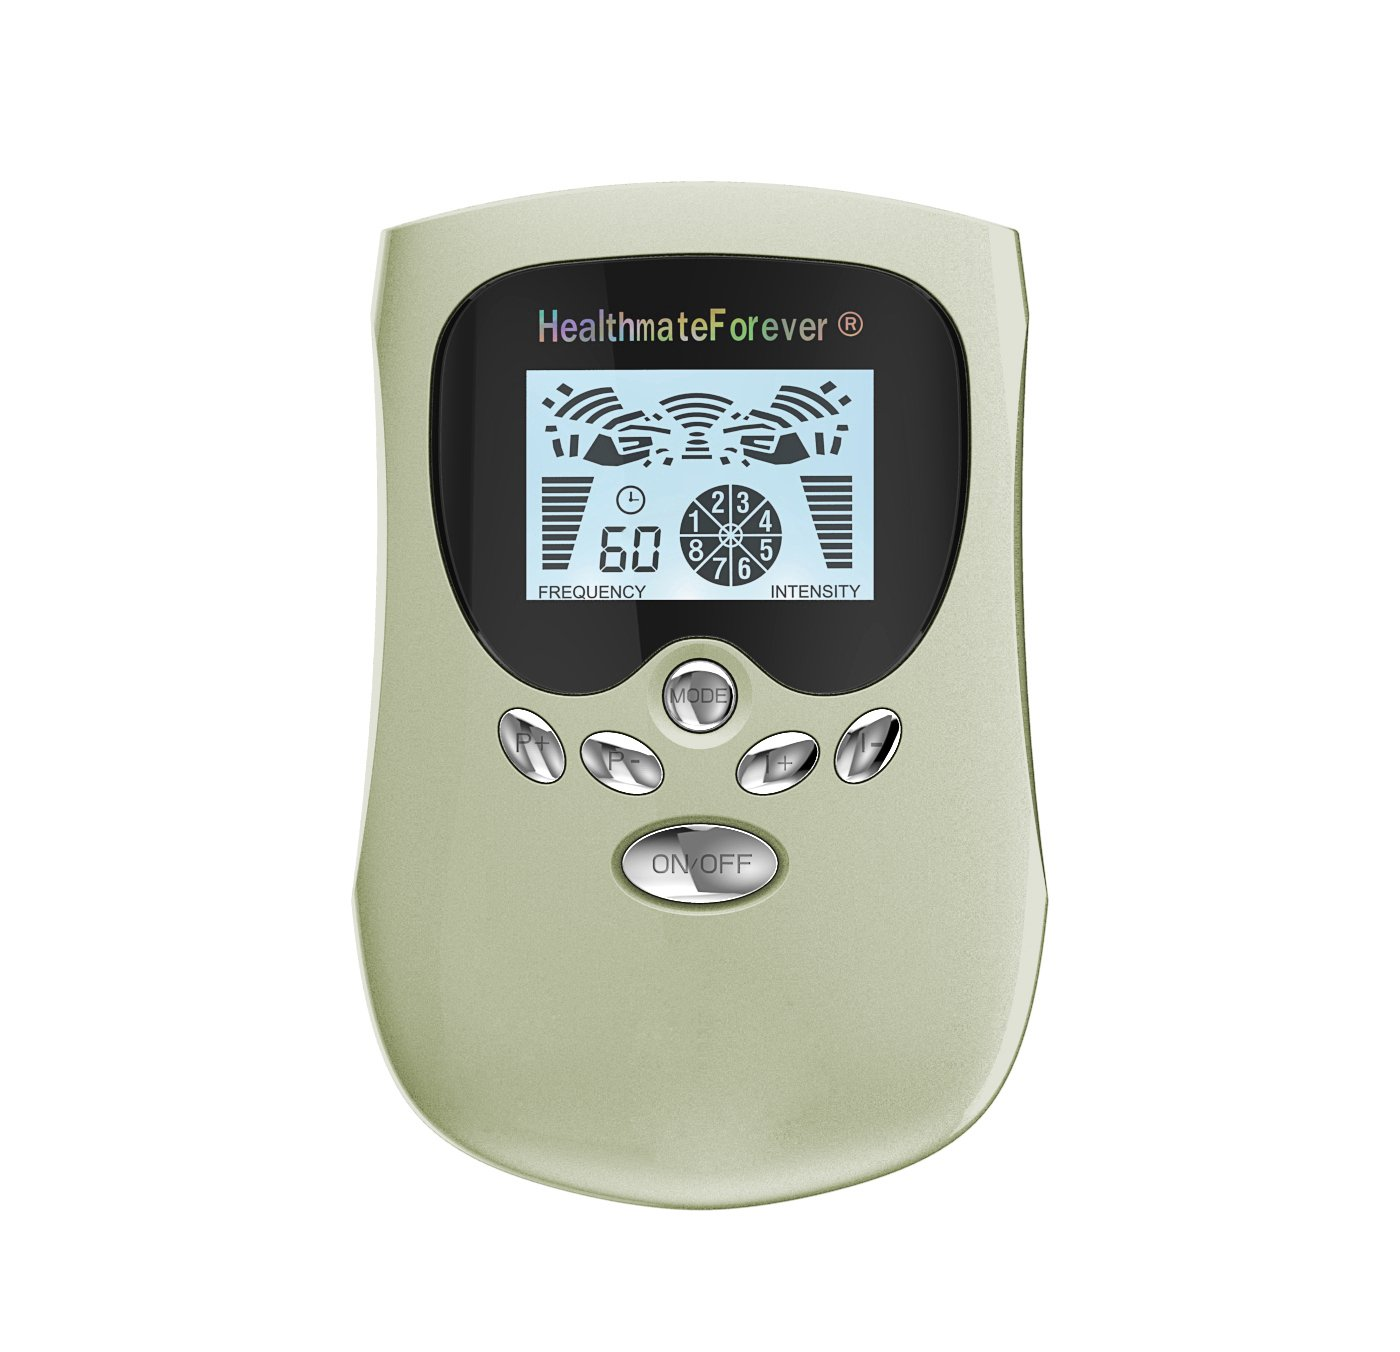 PM8 HealthmateForever TENS Unit Electrical Muscle Stimulator Green + 2 Pairs of Pads